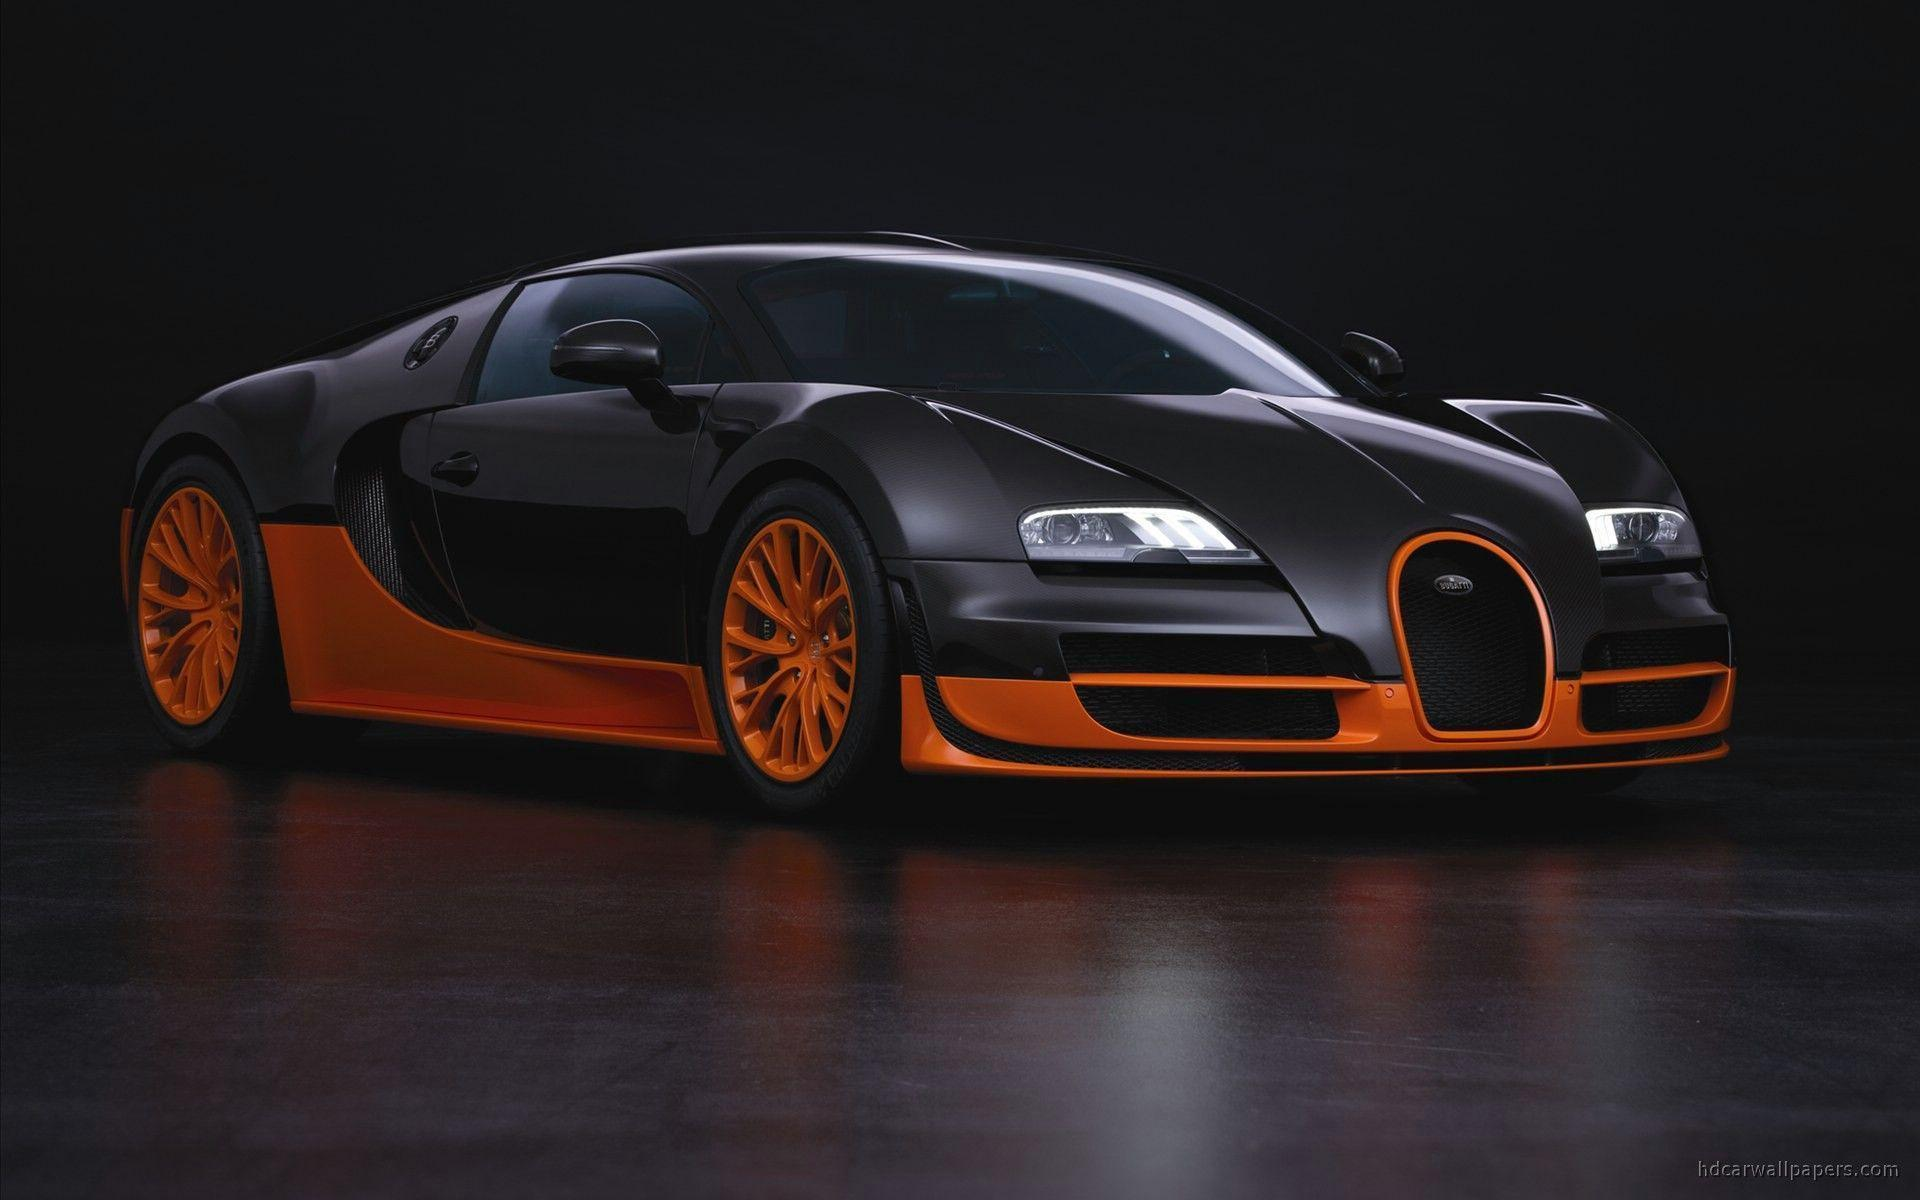 Bugatti Veyron Super Sport Wallpapers - Full HD wallpaper search